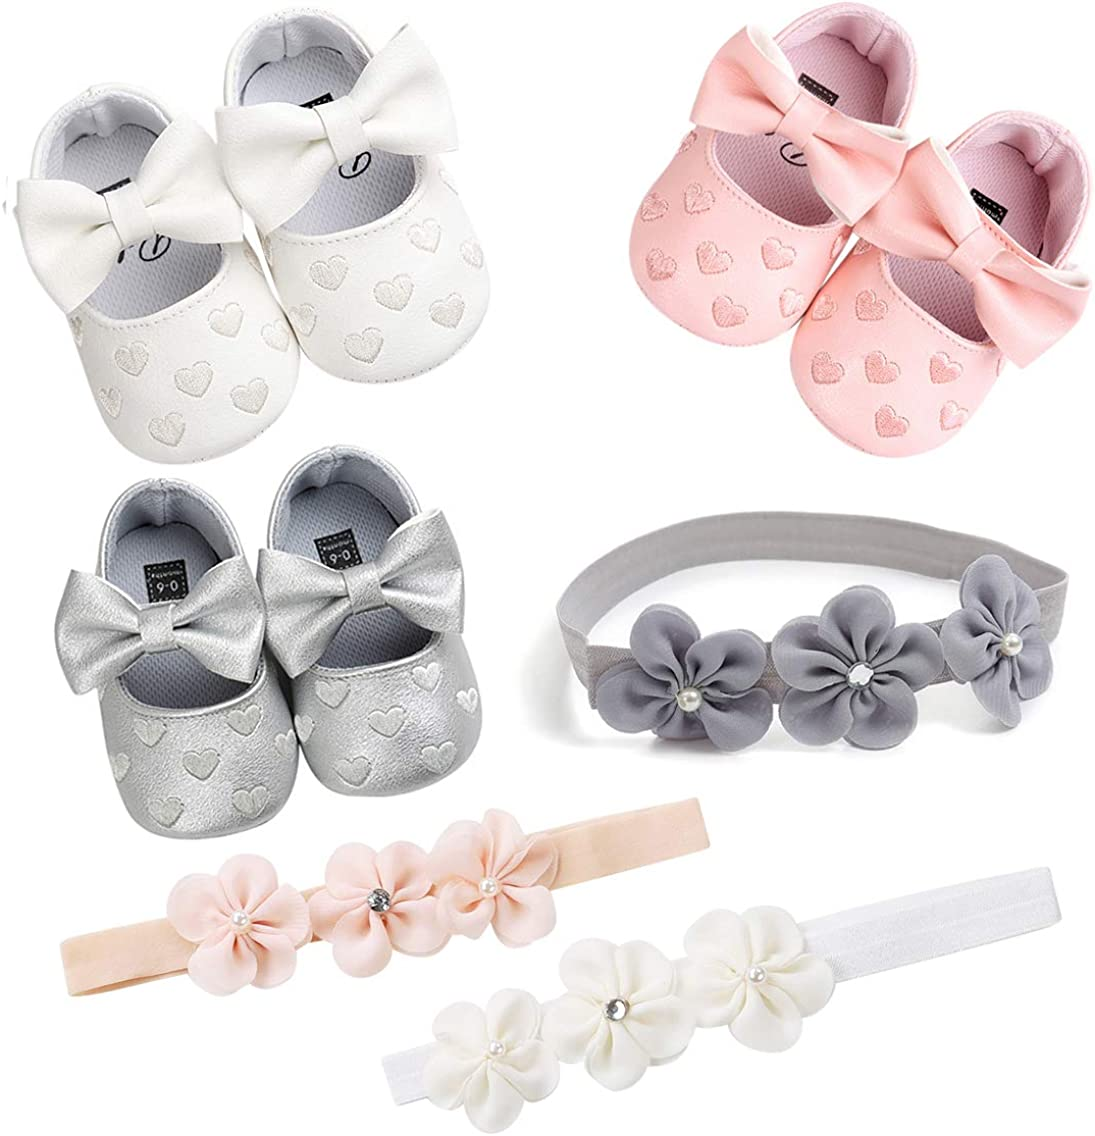 Babies Infants and Toddlers Tuoting Infant Baby Girl Shoes,Baby Mary Jane Flats Princess Dress Shoes,Crib Shoe for Newborns